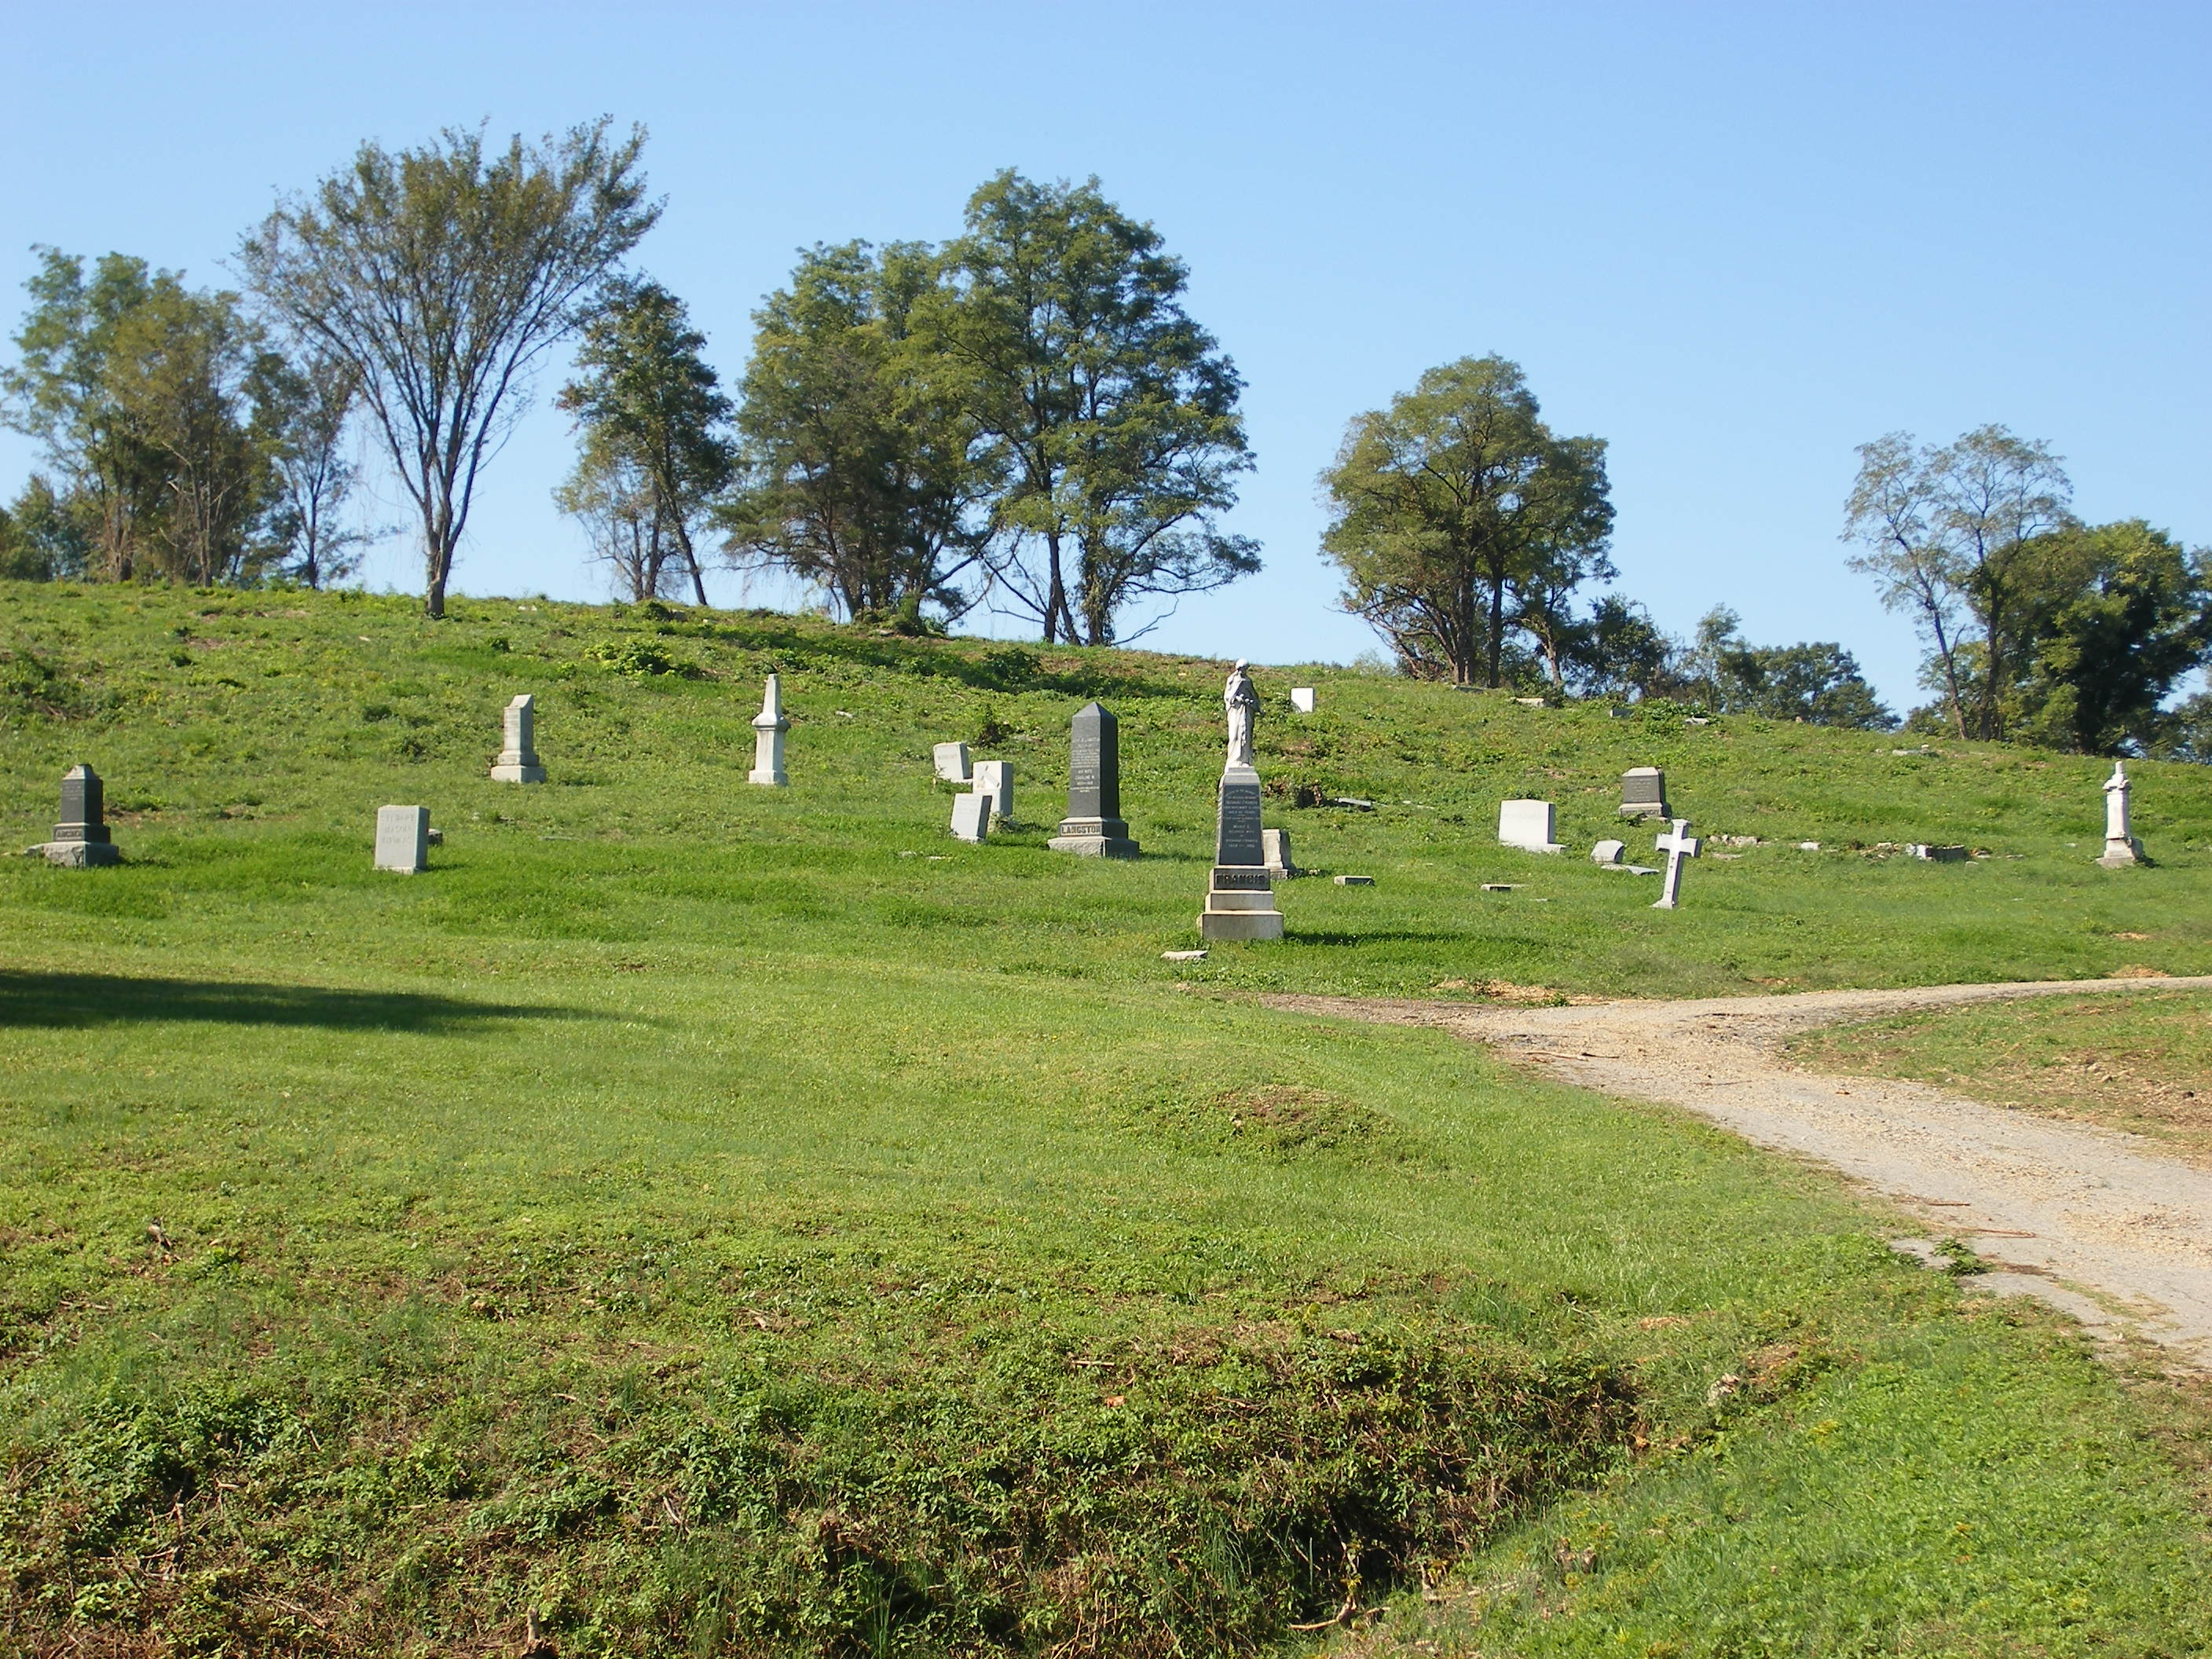 Woodlawn Cemetery (source: woodlawndc.org)